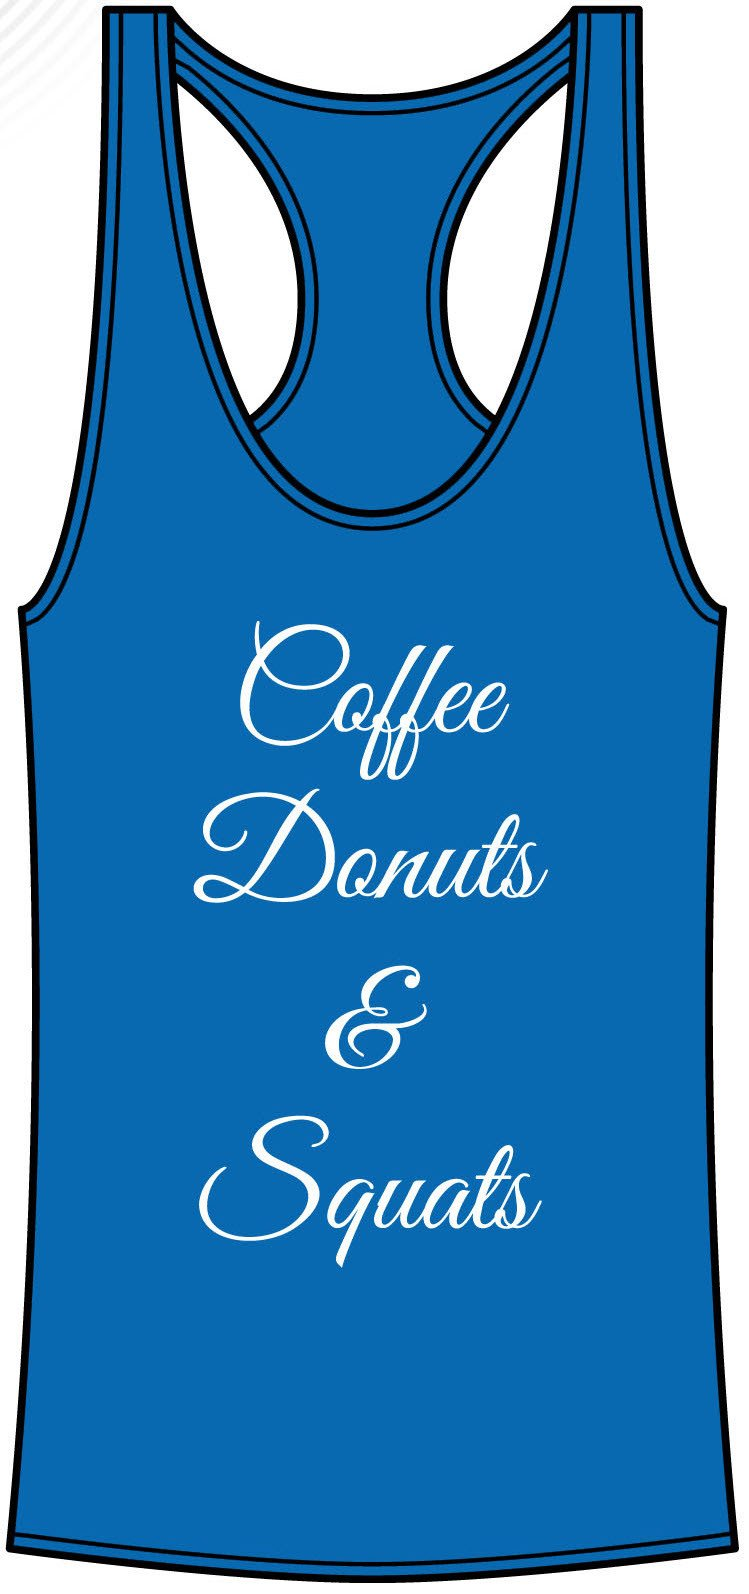 Coffee, Donuts, & Squats- Royal Blue - FitGirls_inspire - 2